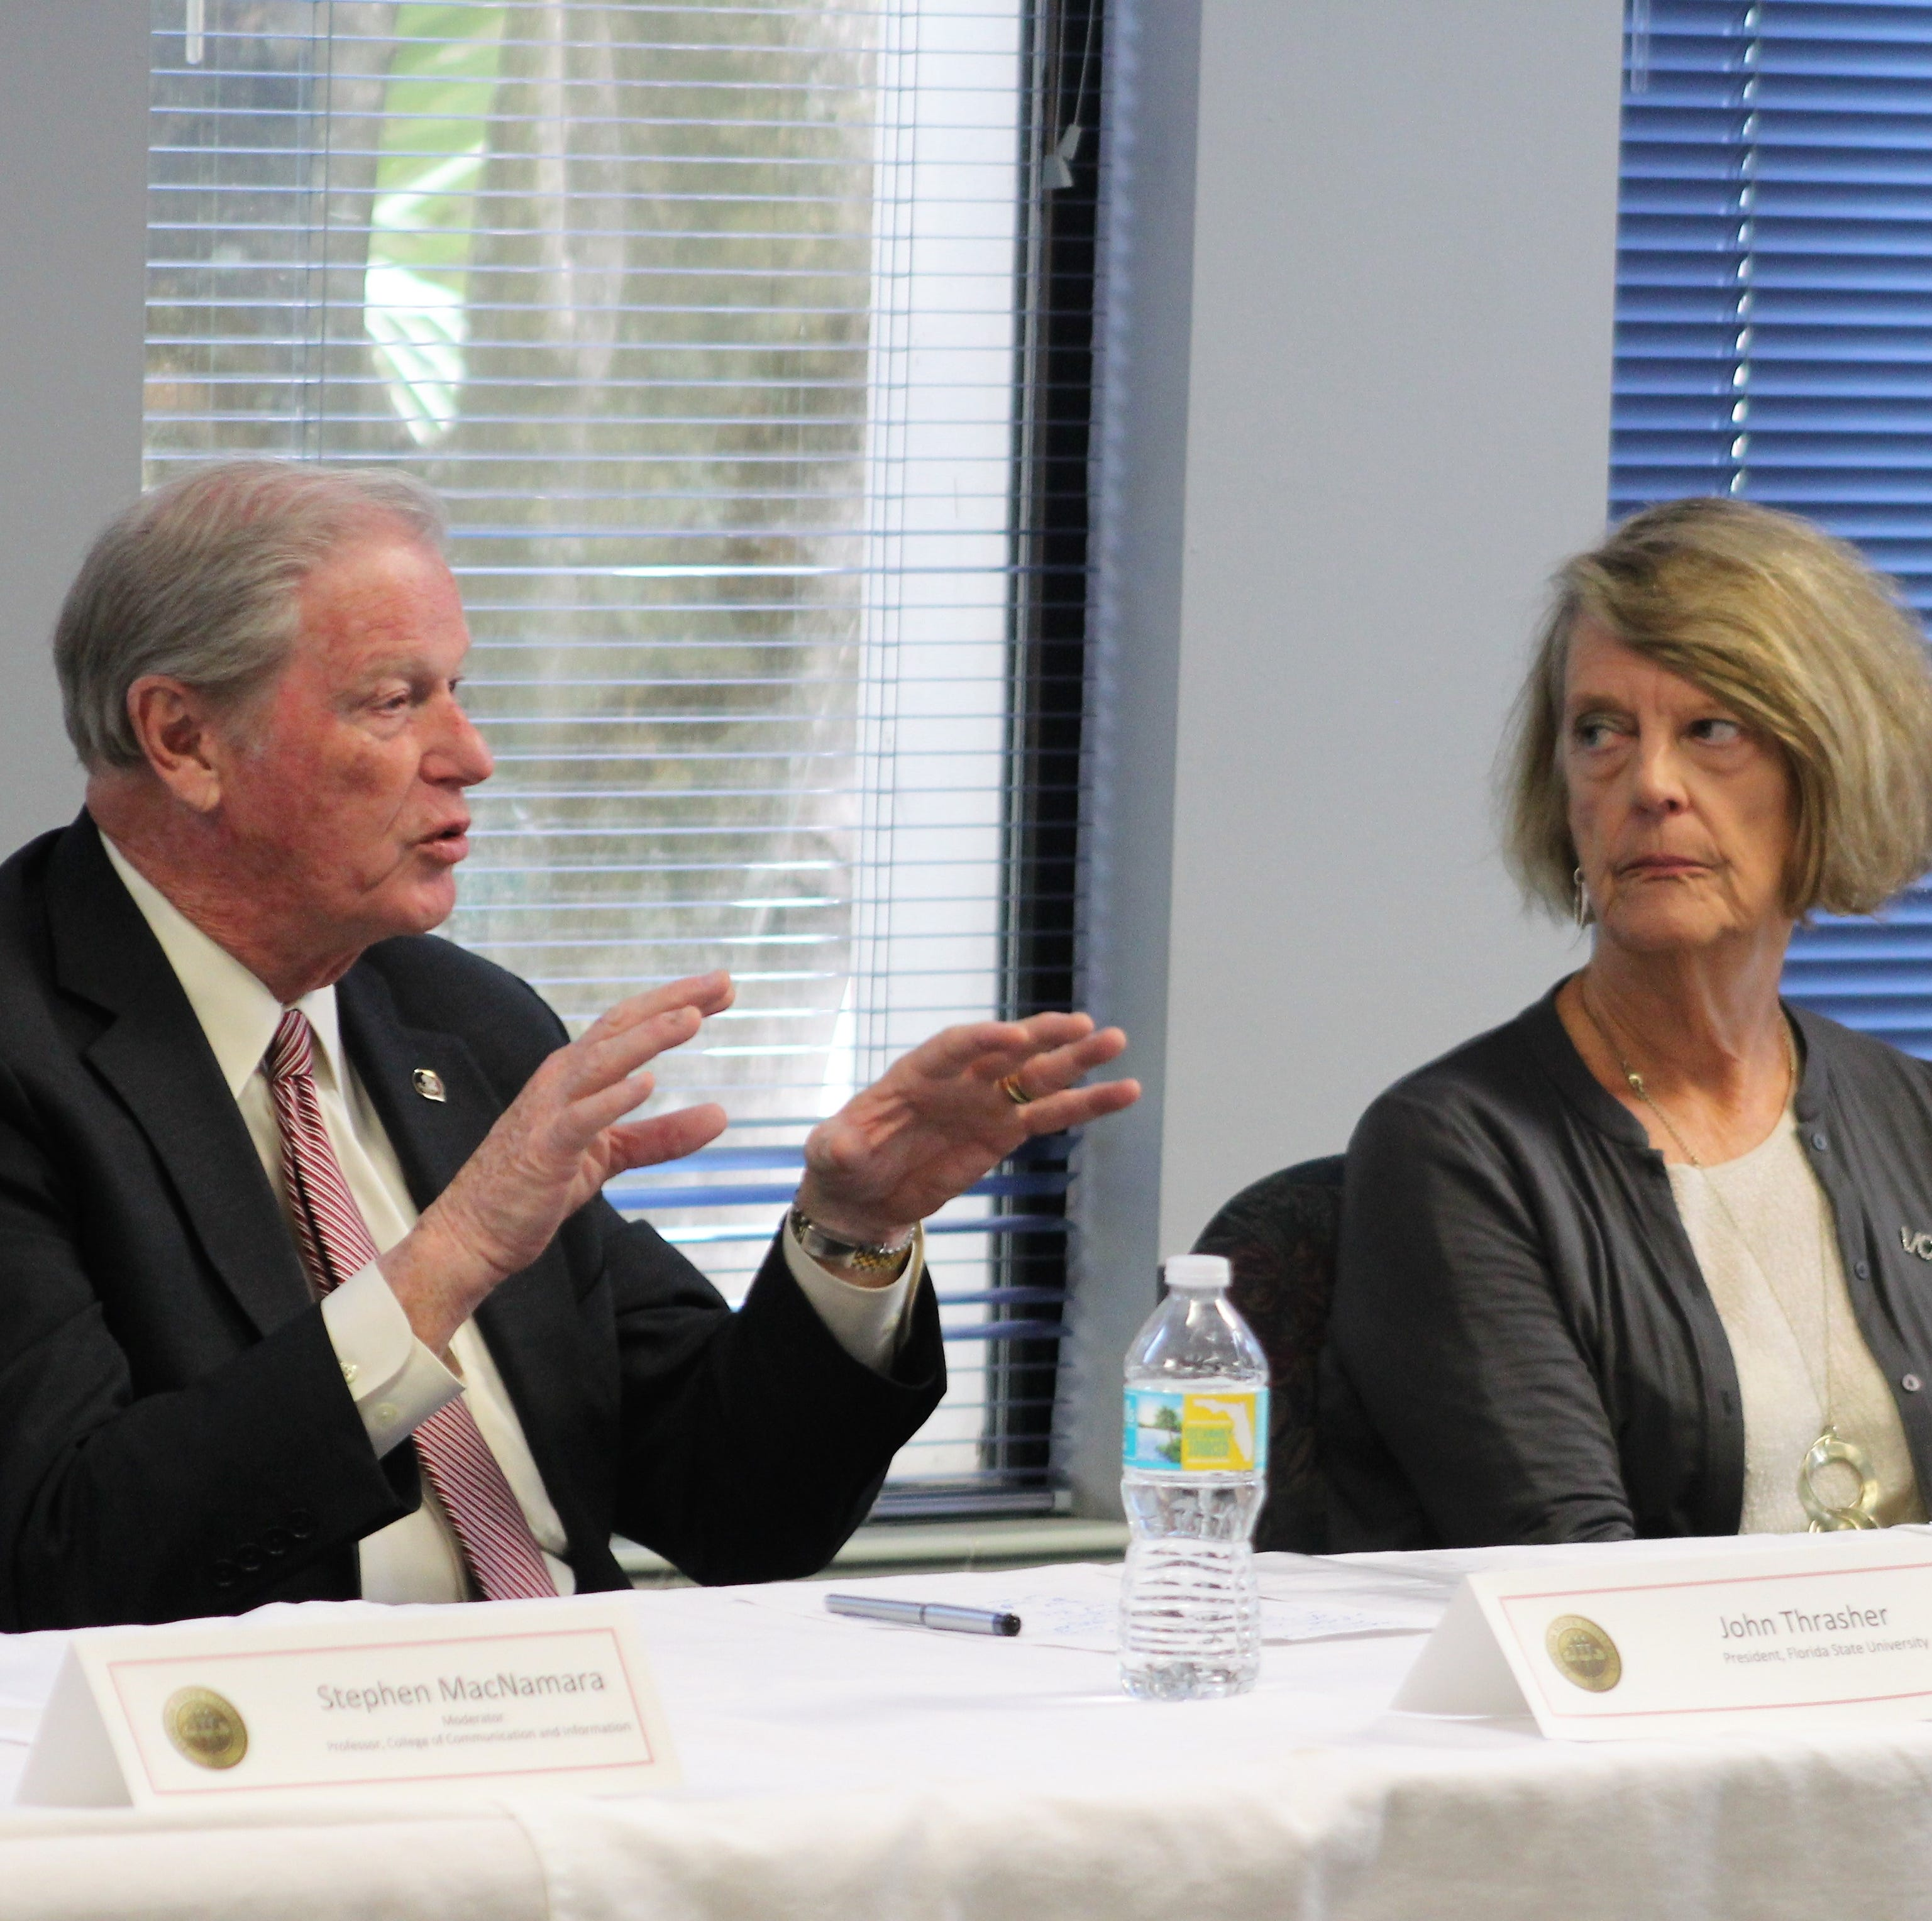 Students should be more active in state government, says FSU President John Thrasher